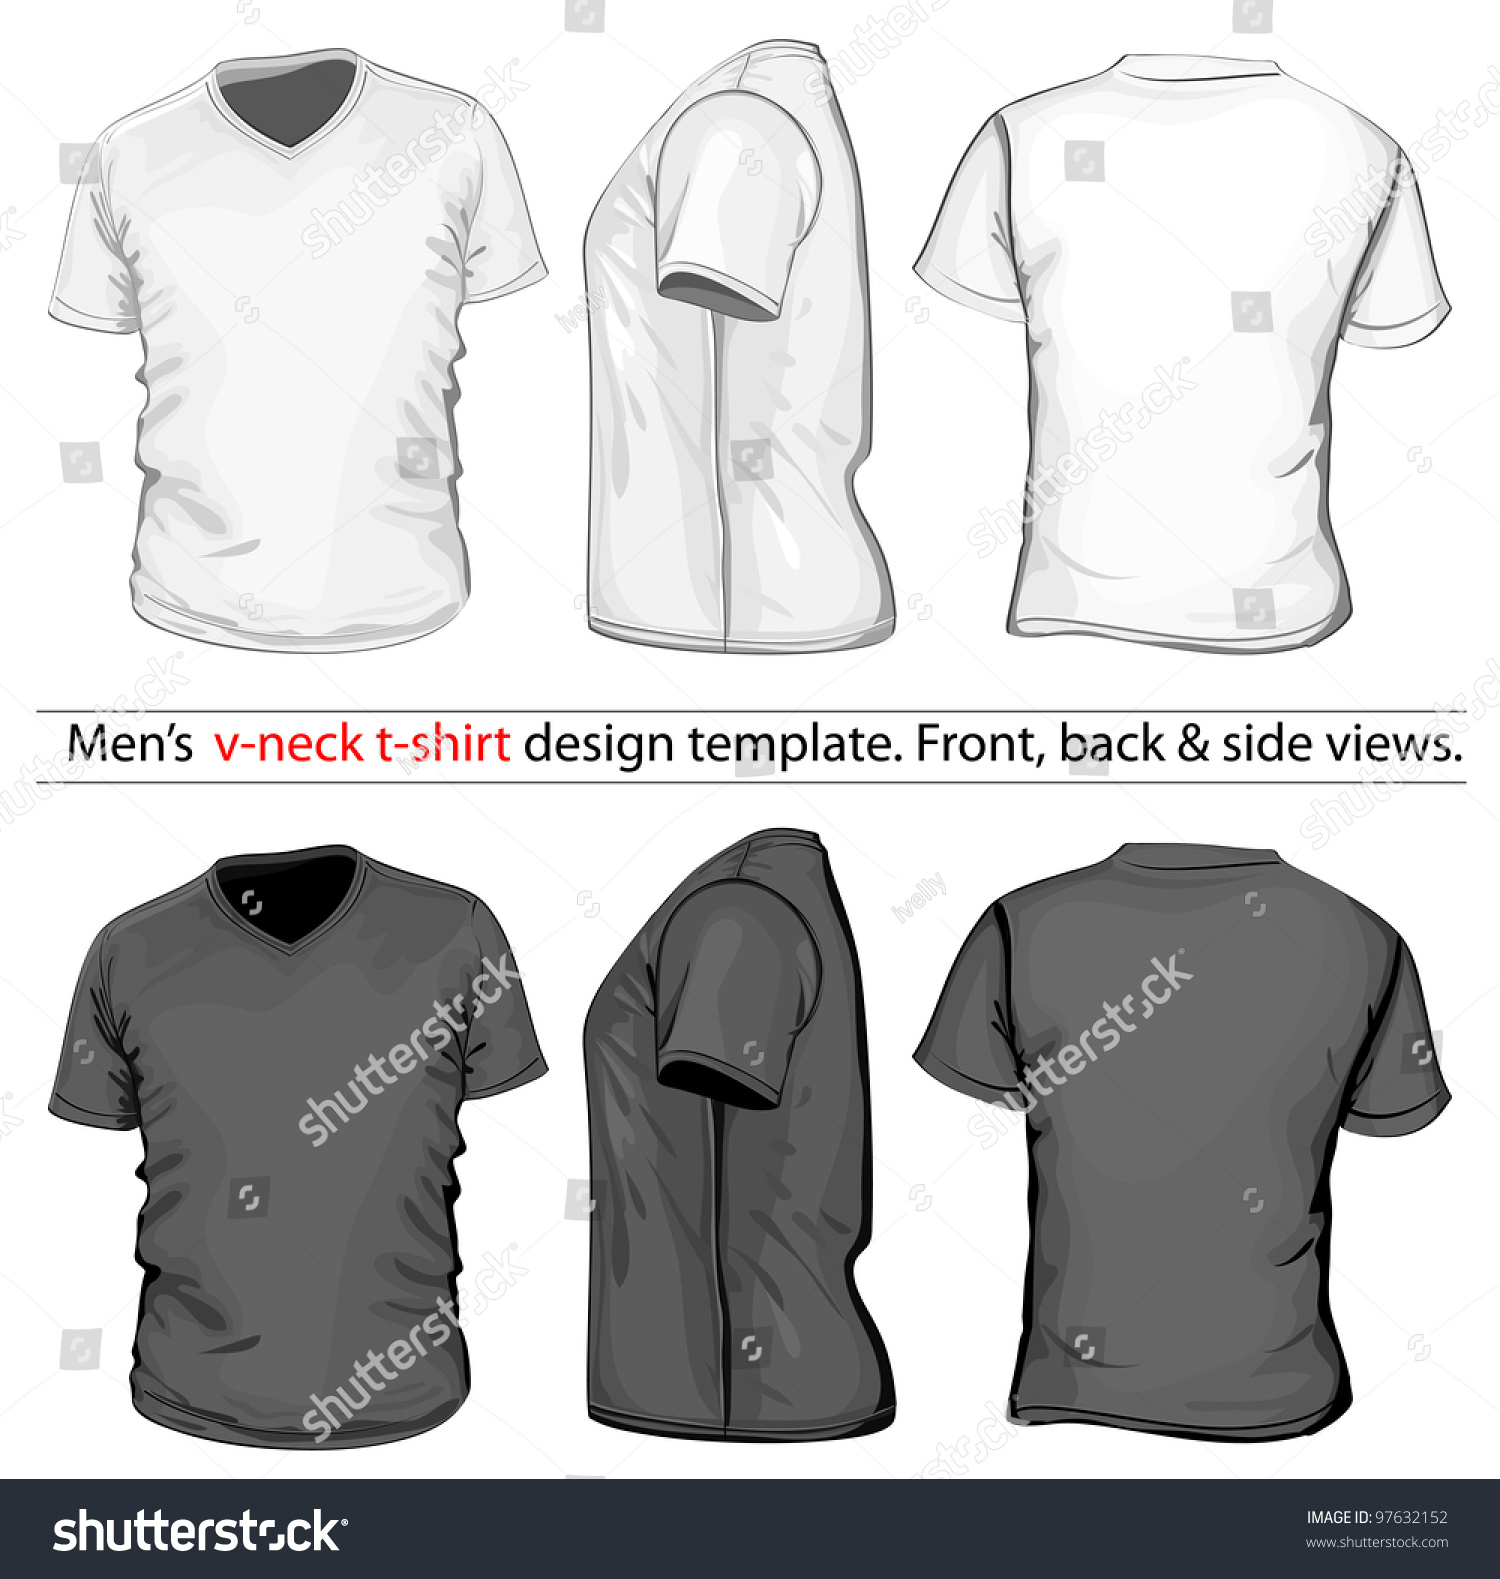 Black t shirt vector front and back - Vector Men S V Neck T Shirt Design Template Front Back And